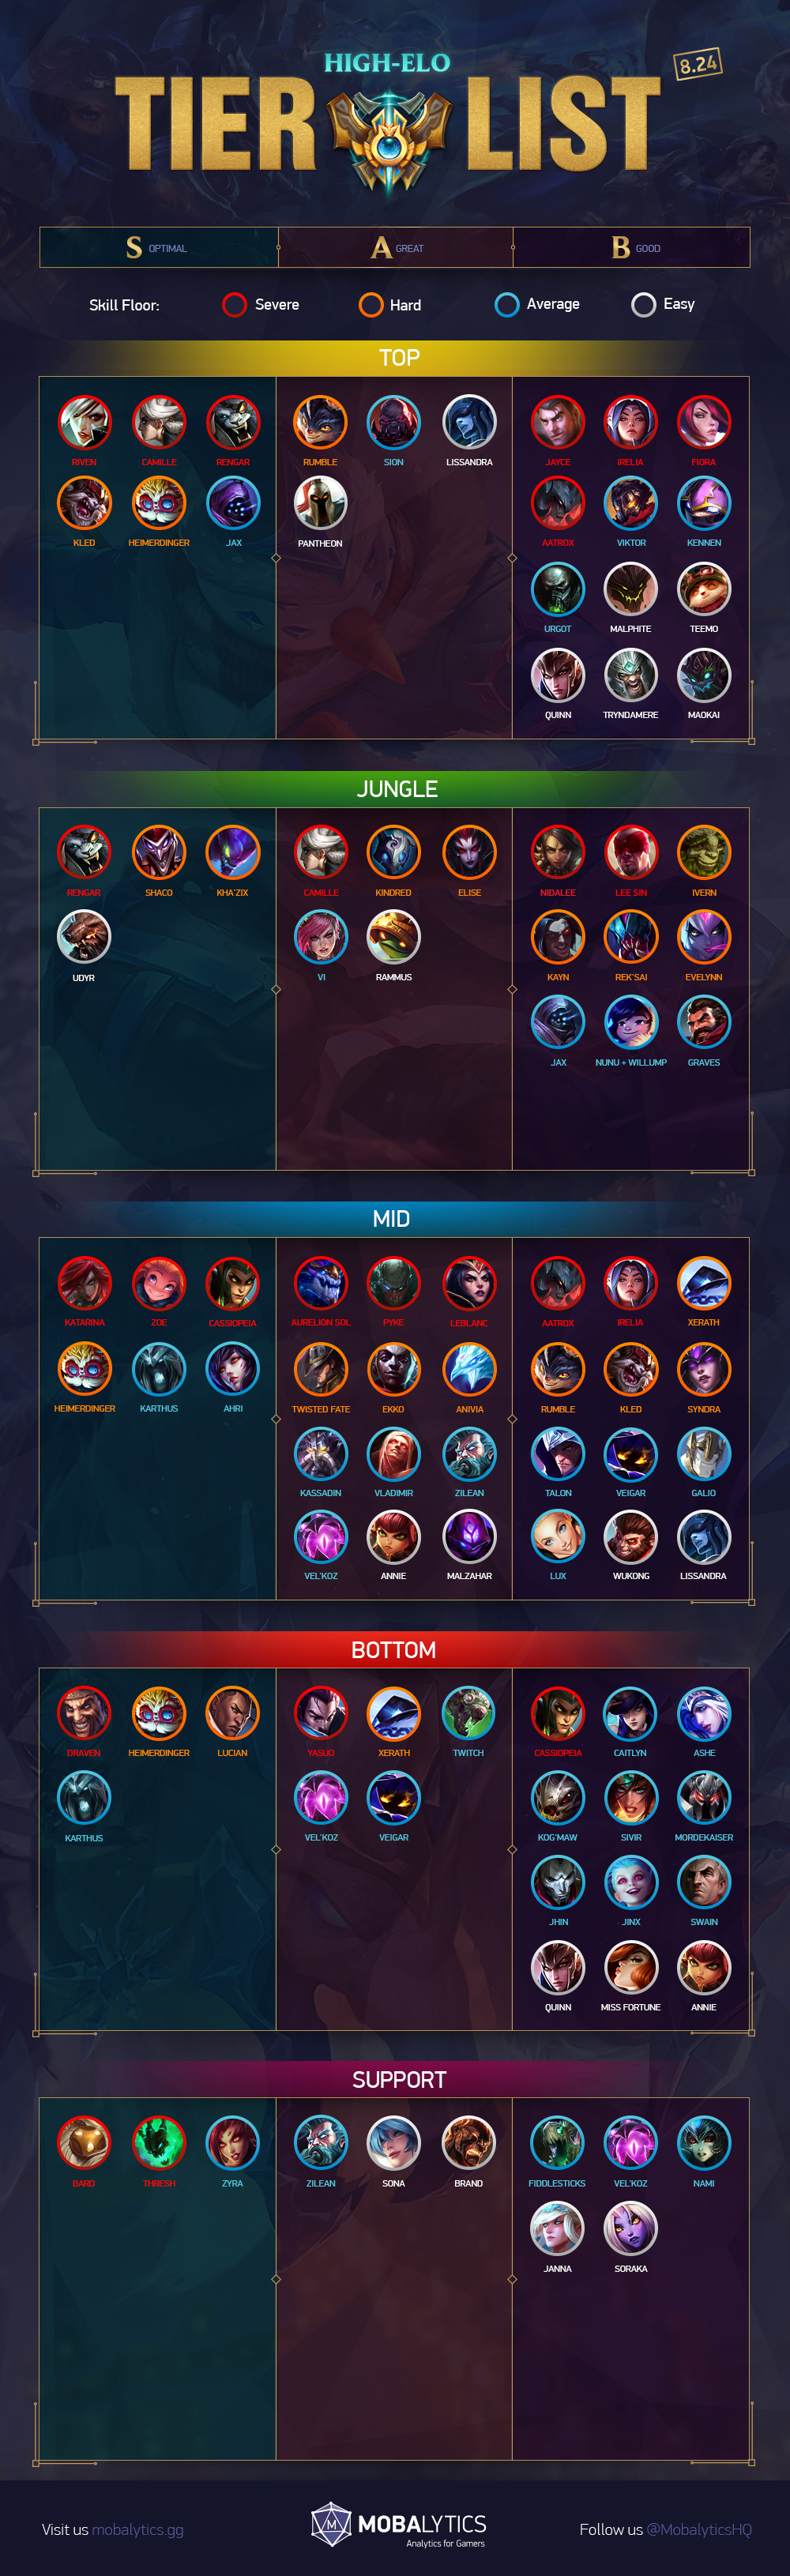 League of Legends Patch 8 24 Tier List for Climbing Solo